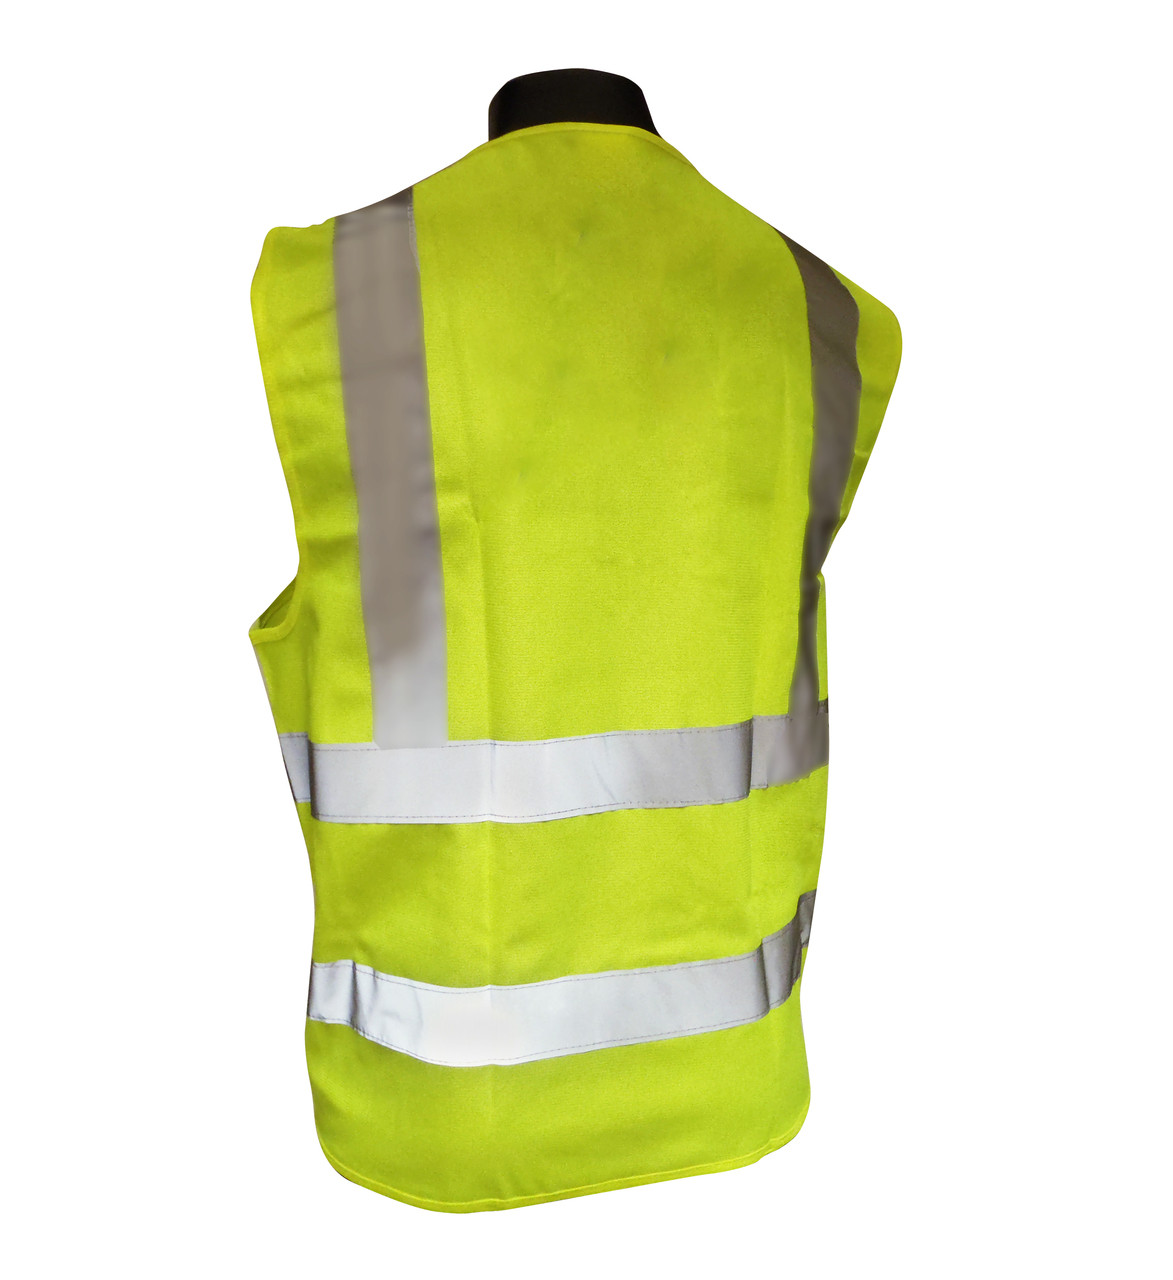 Breakaway Class 2 Safety Vests - Mesh - Hi-Vis Yellow Back